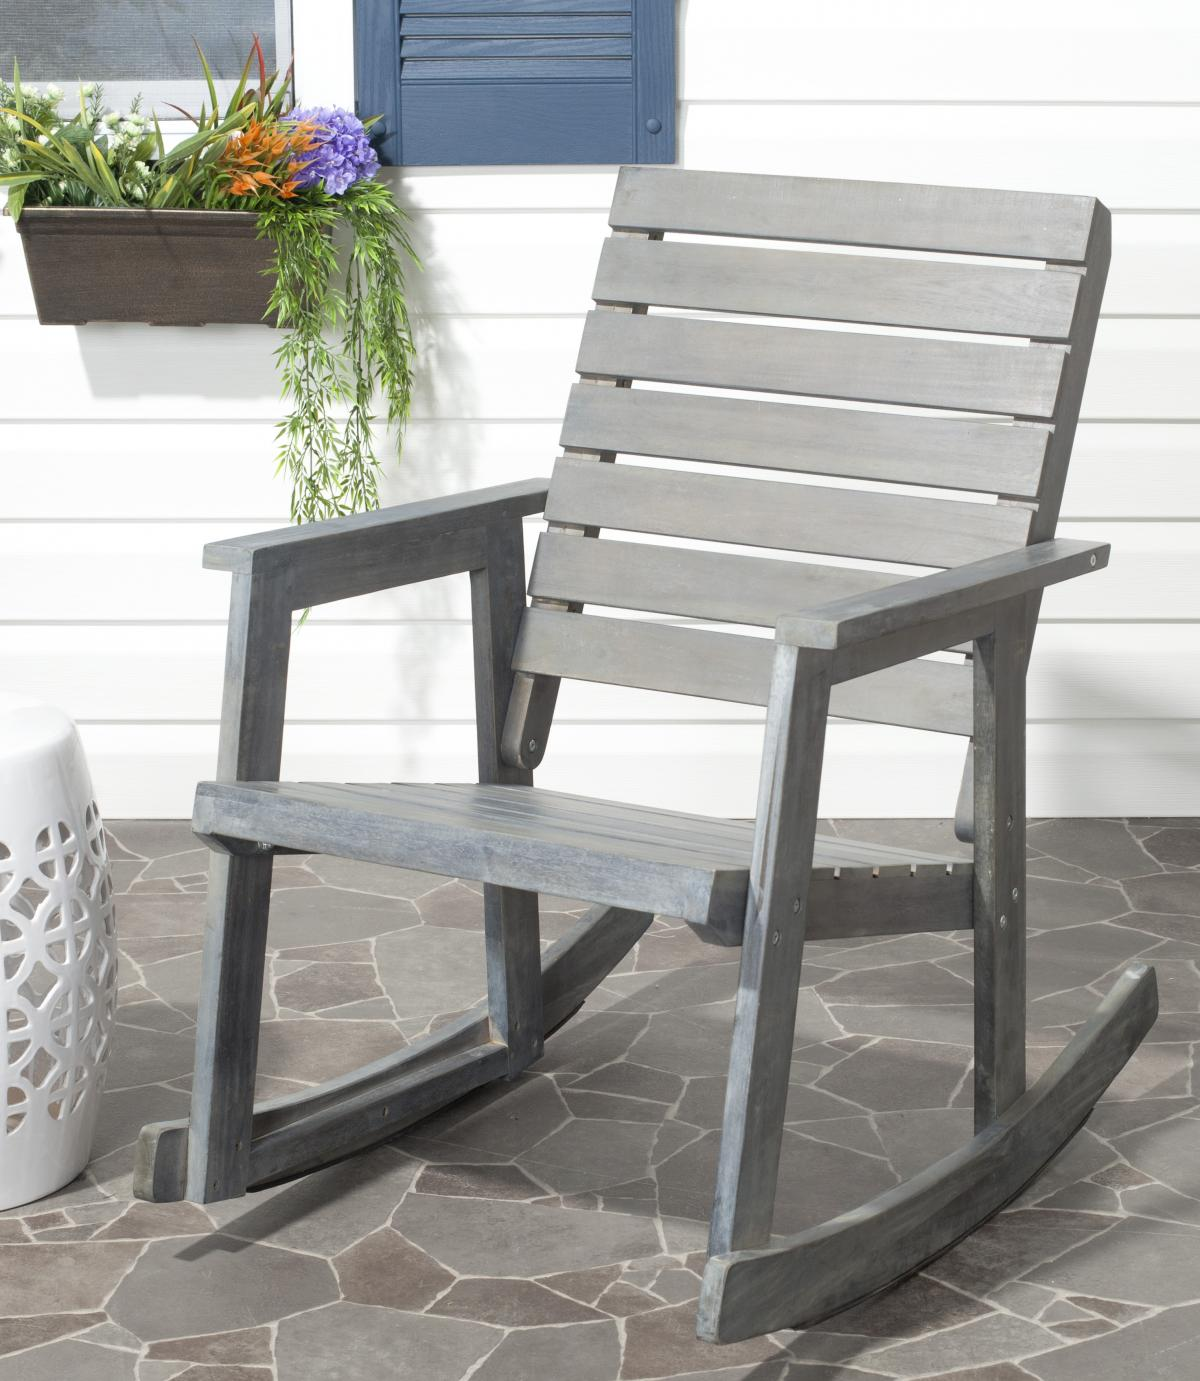 Miraculous Fox6702A Outdoor Rocking Chairs Rocking Chairs Furniture Unemploymentrelief Wooden Chair Designs For Living Room Unemploymentrelieforg